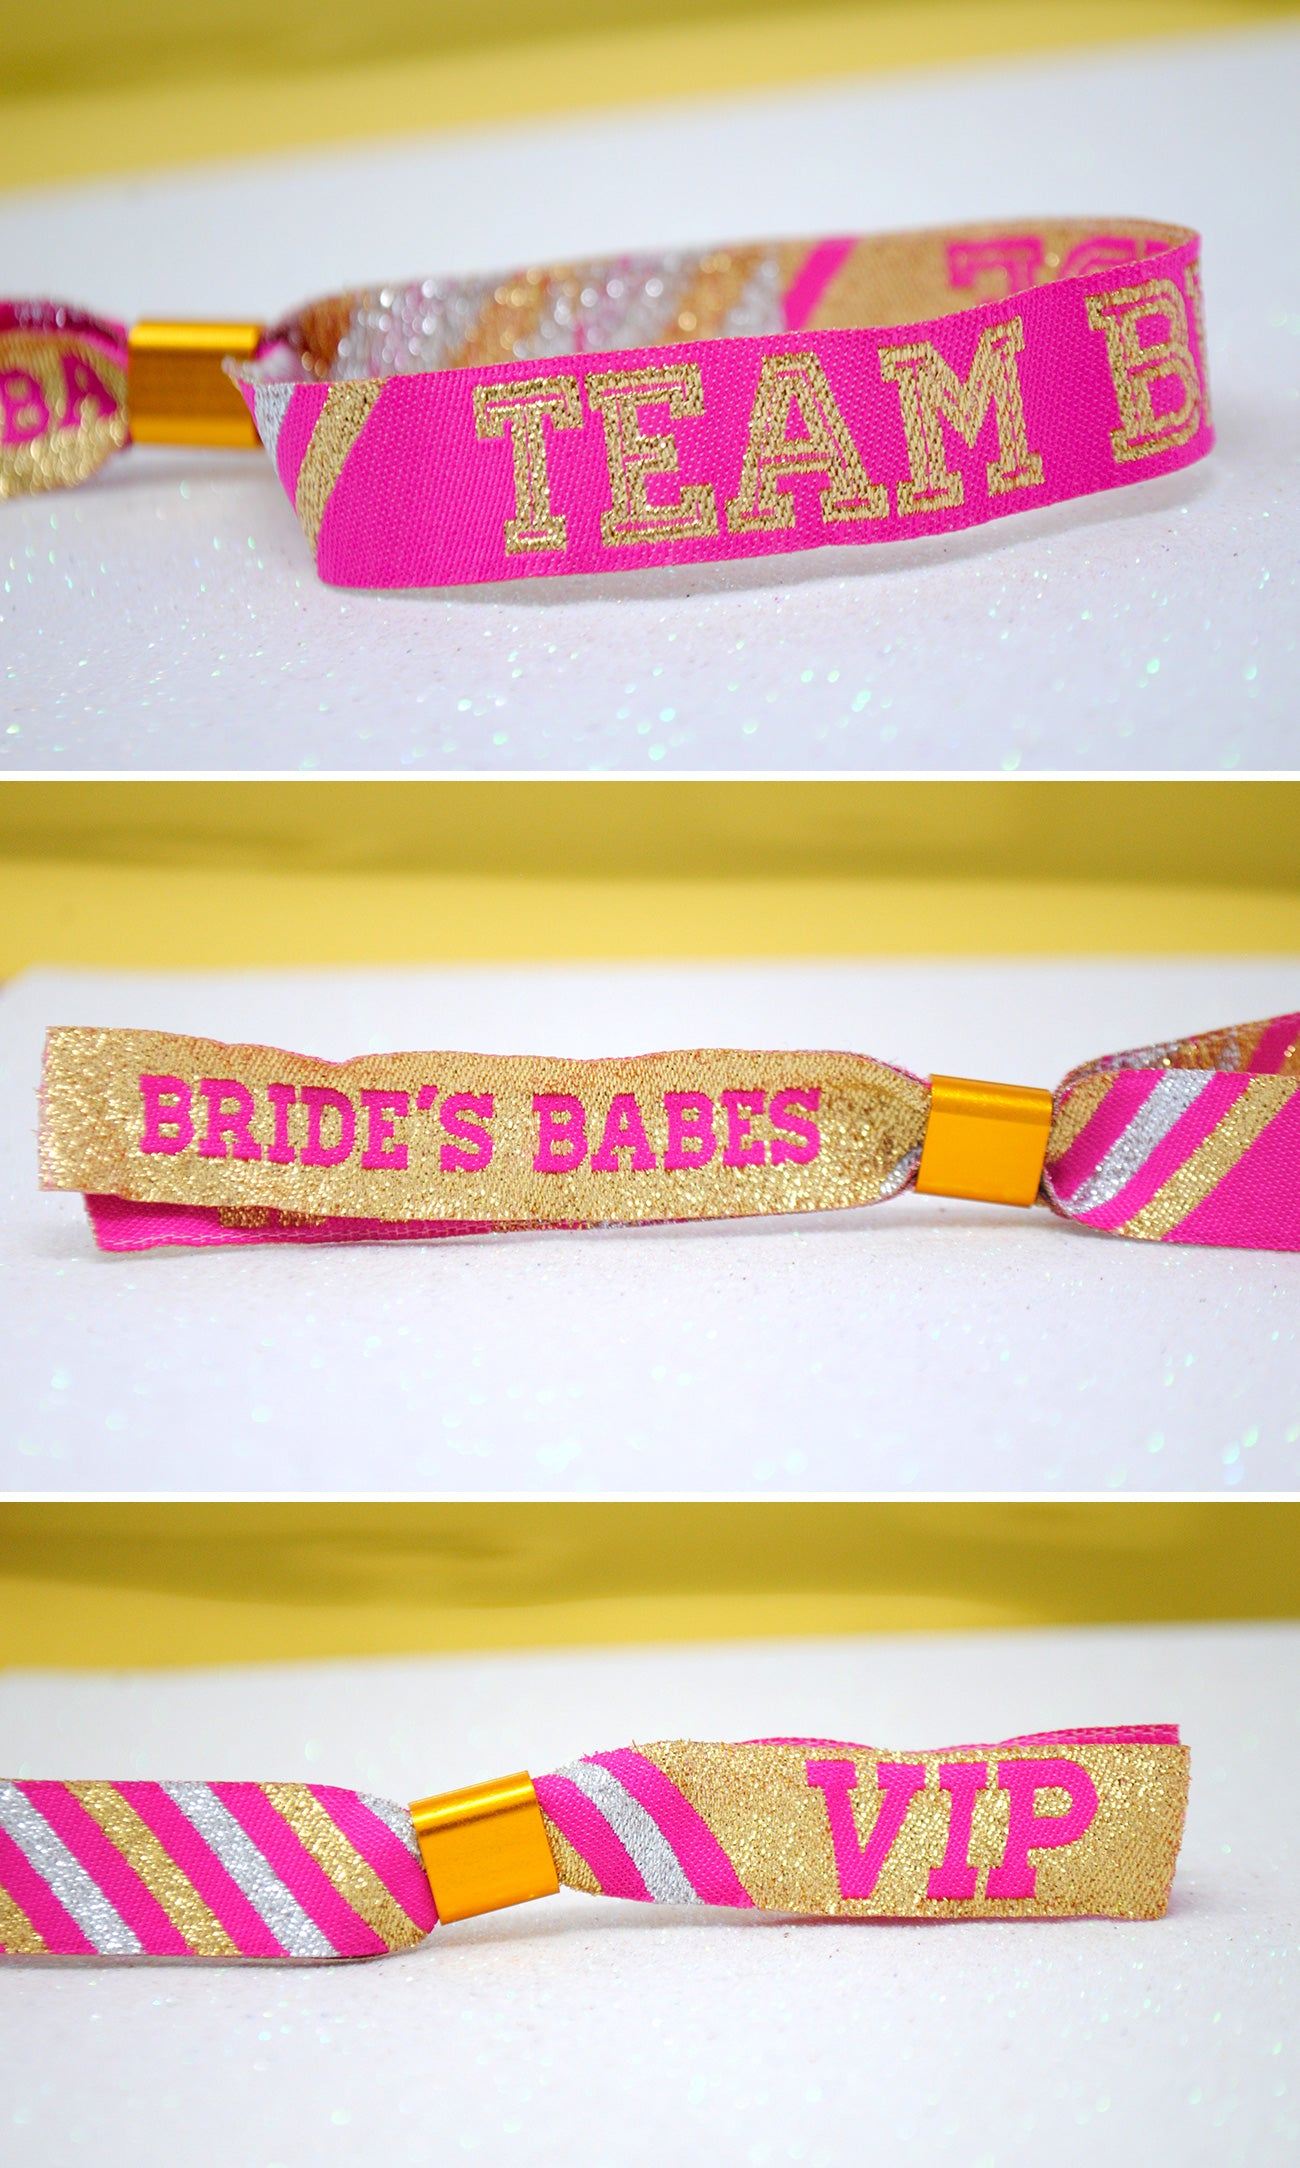 team bride brides babes hen party cheerleader wristbands